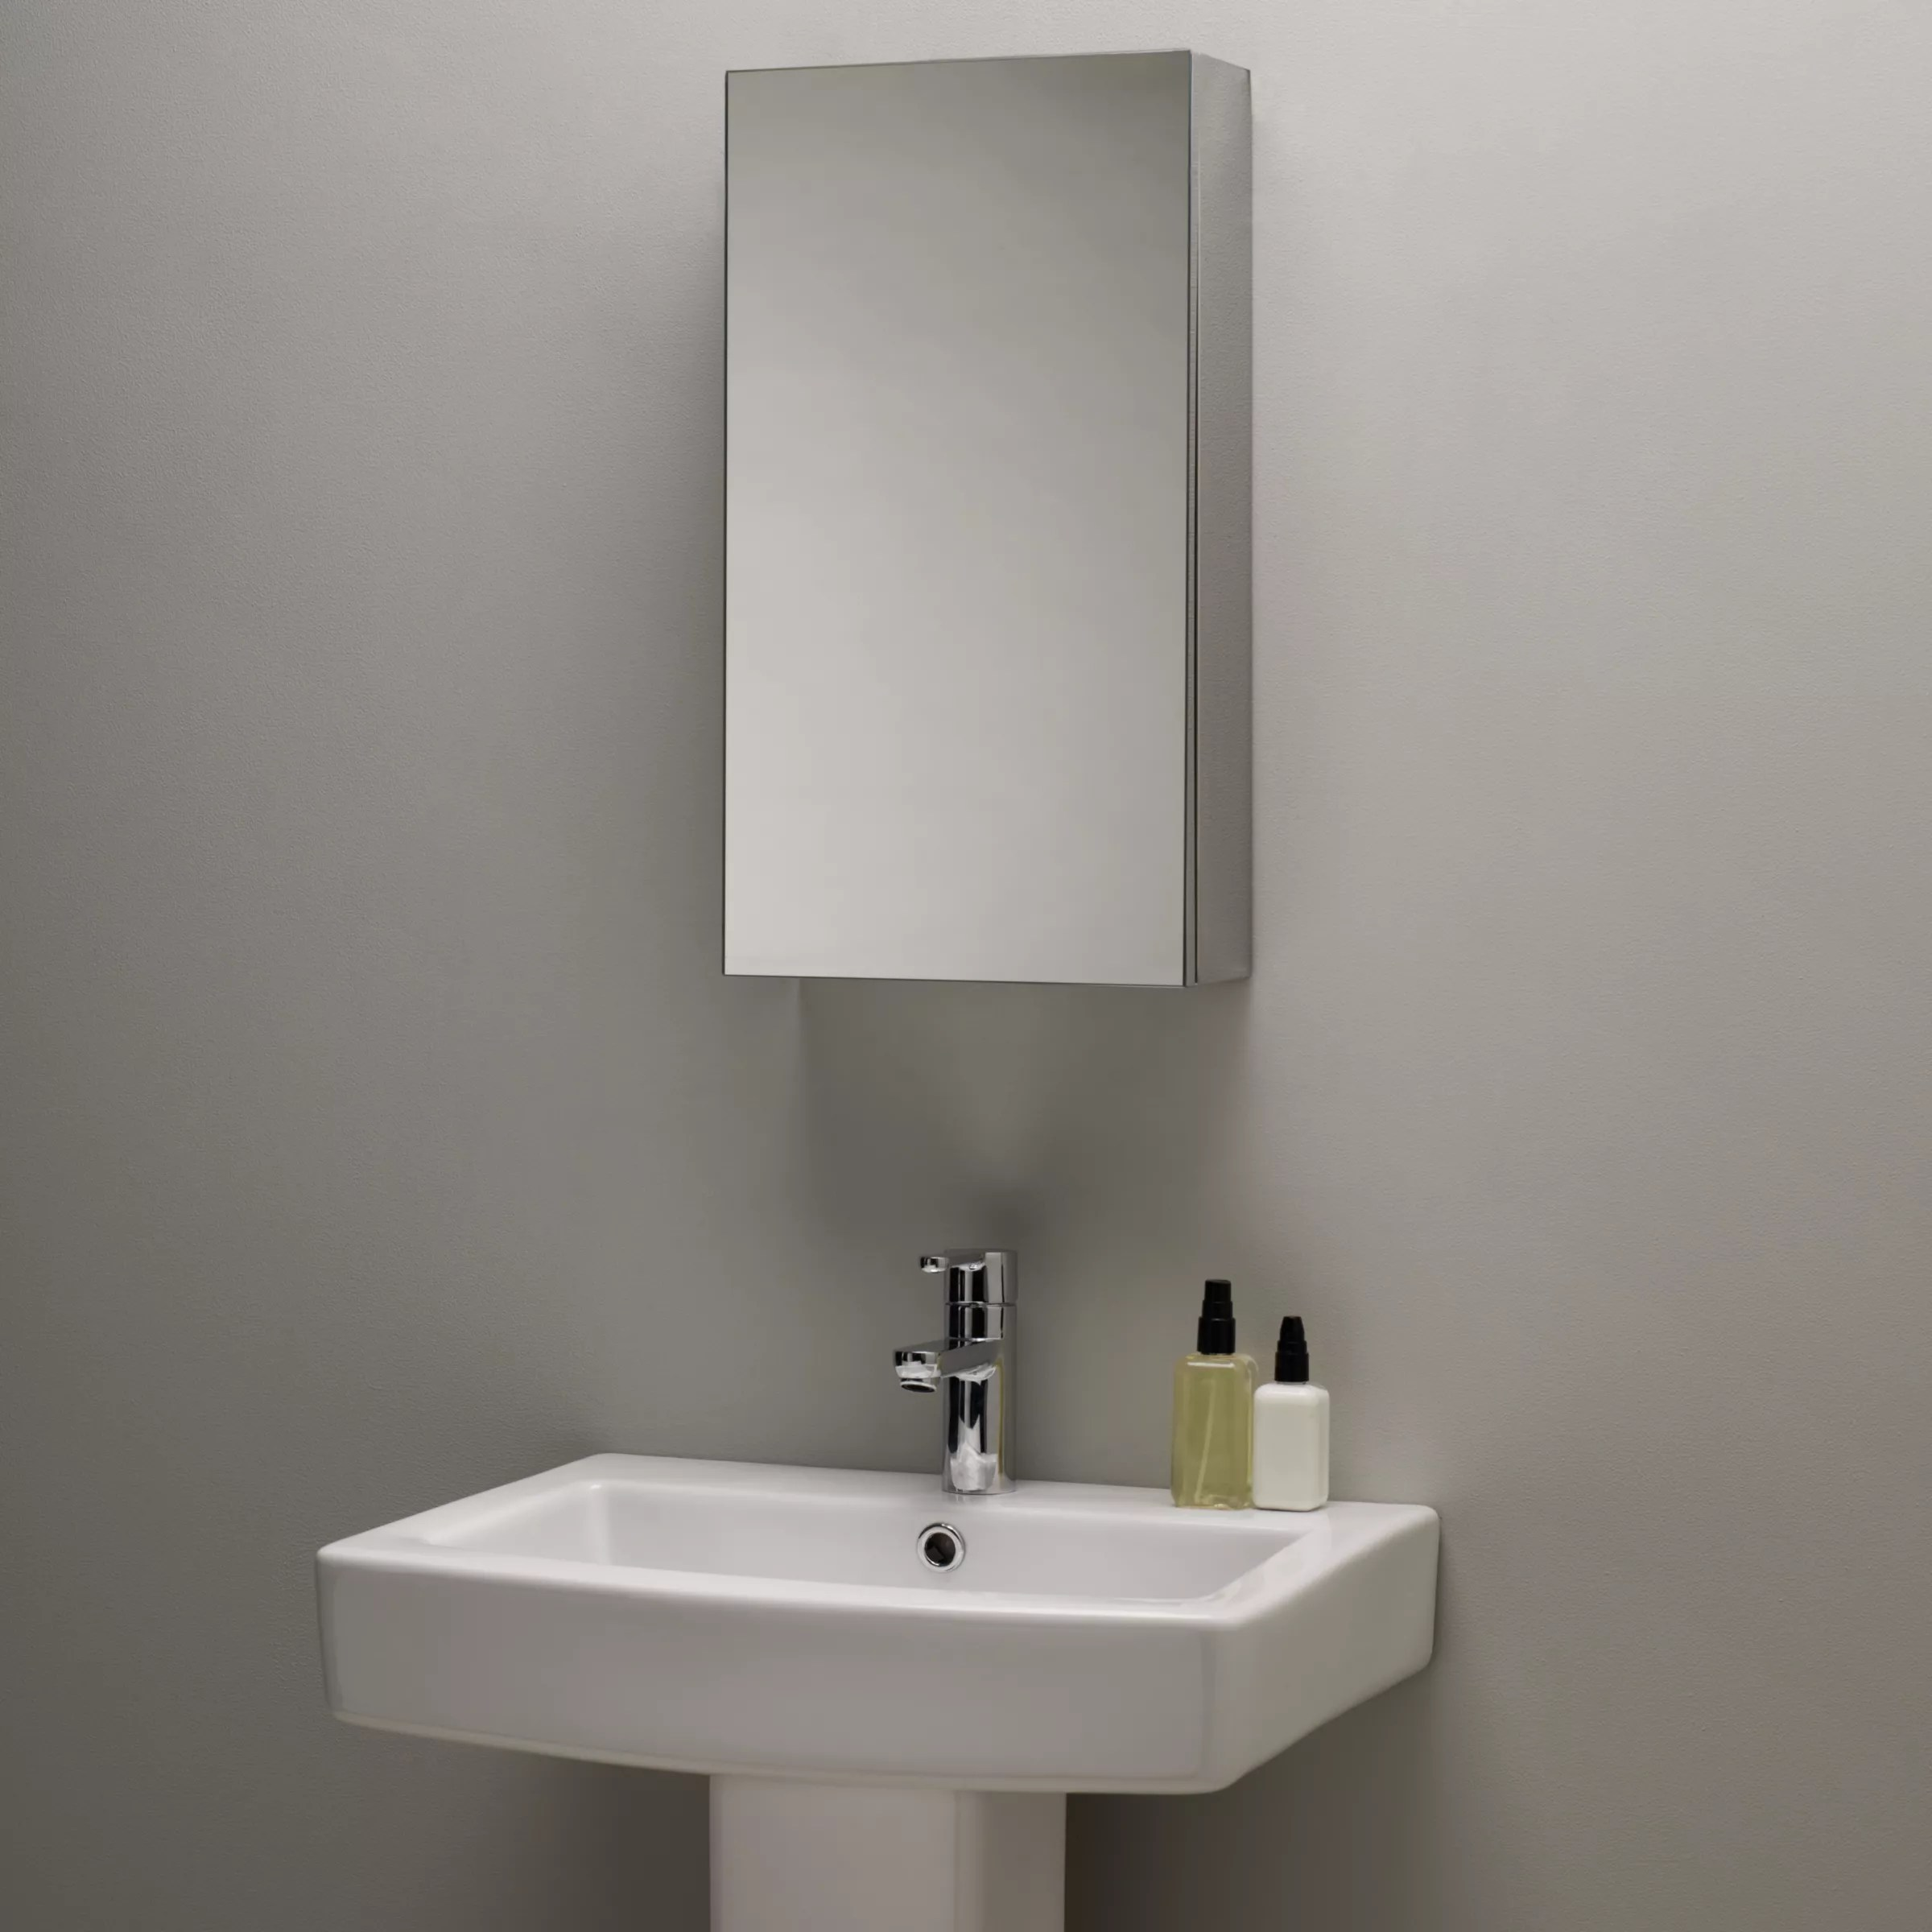 Stainless Steel Mirrored Bathroom Cabinets John Lewis Single Mirrored Bathroom Cabinet Small